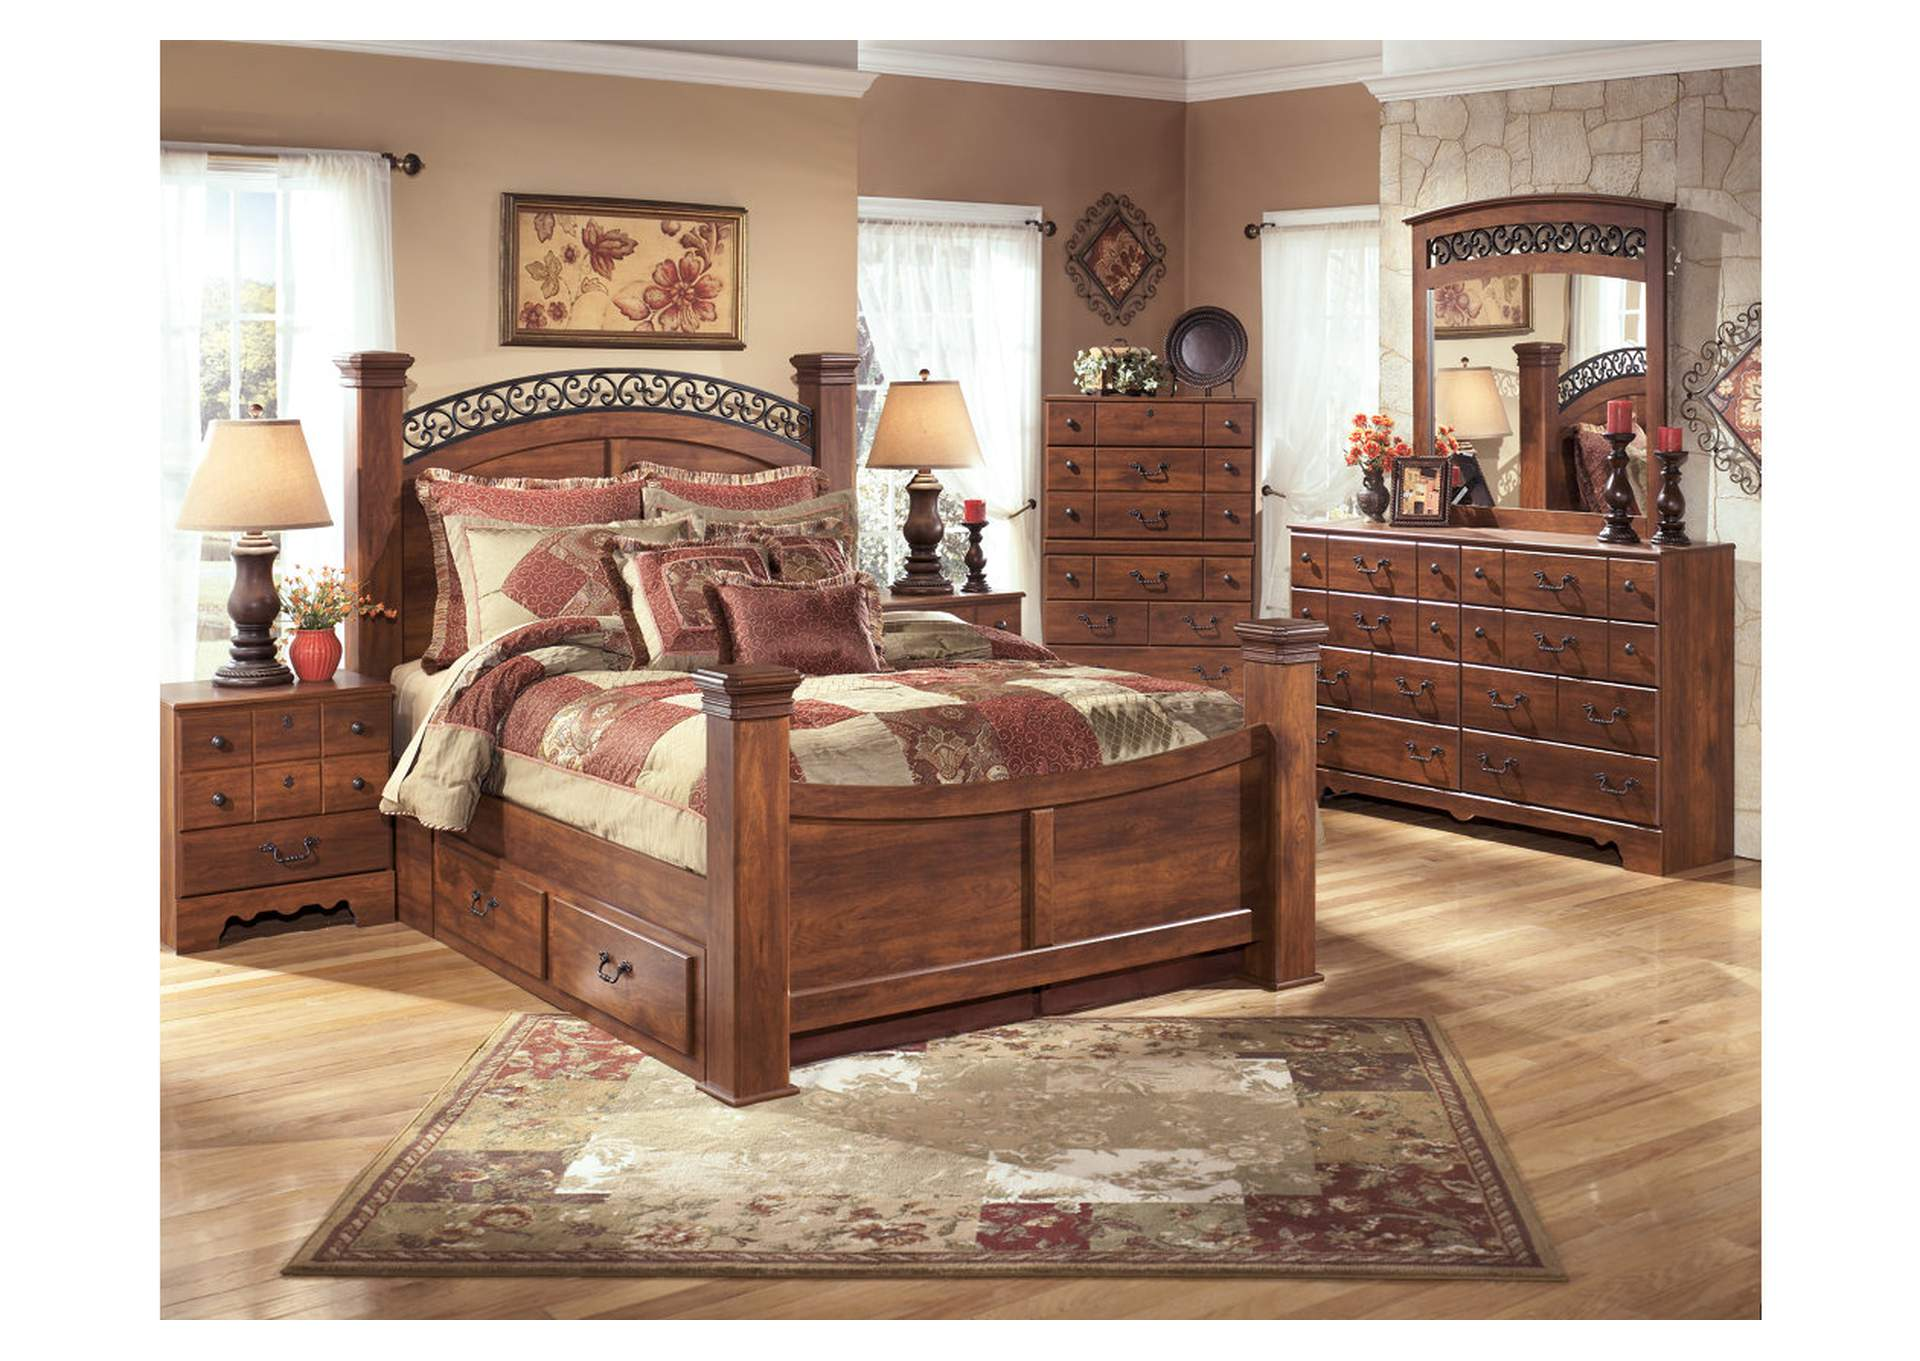 Timberline Queen Poster Bed w/Storage,Signature Design by Ashley